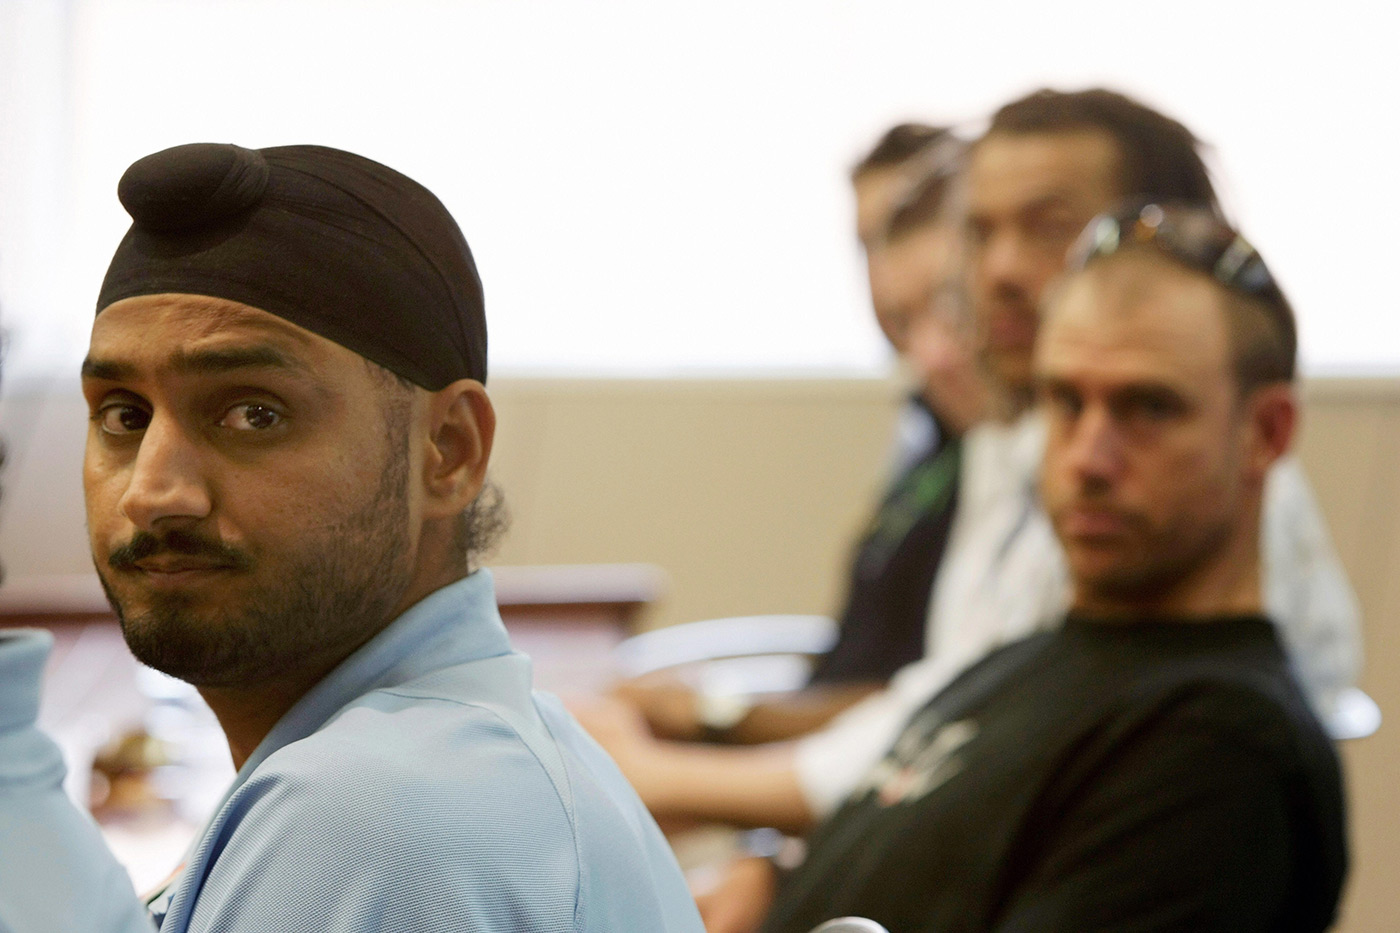 Harbhajan Singh at a court hearing in the wake of the racial abuse scandal involving him and Andrew Symonds in 2008